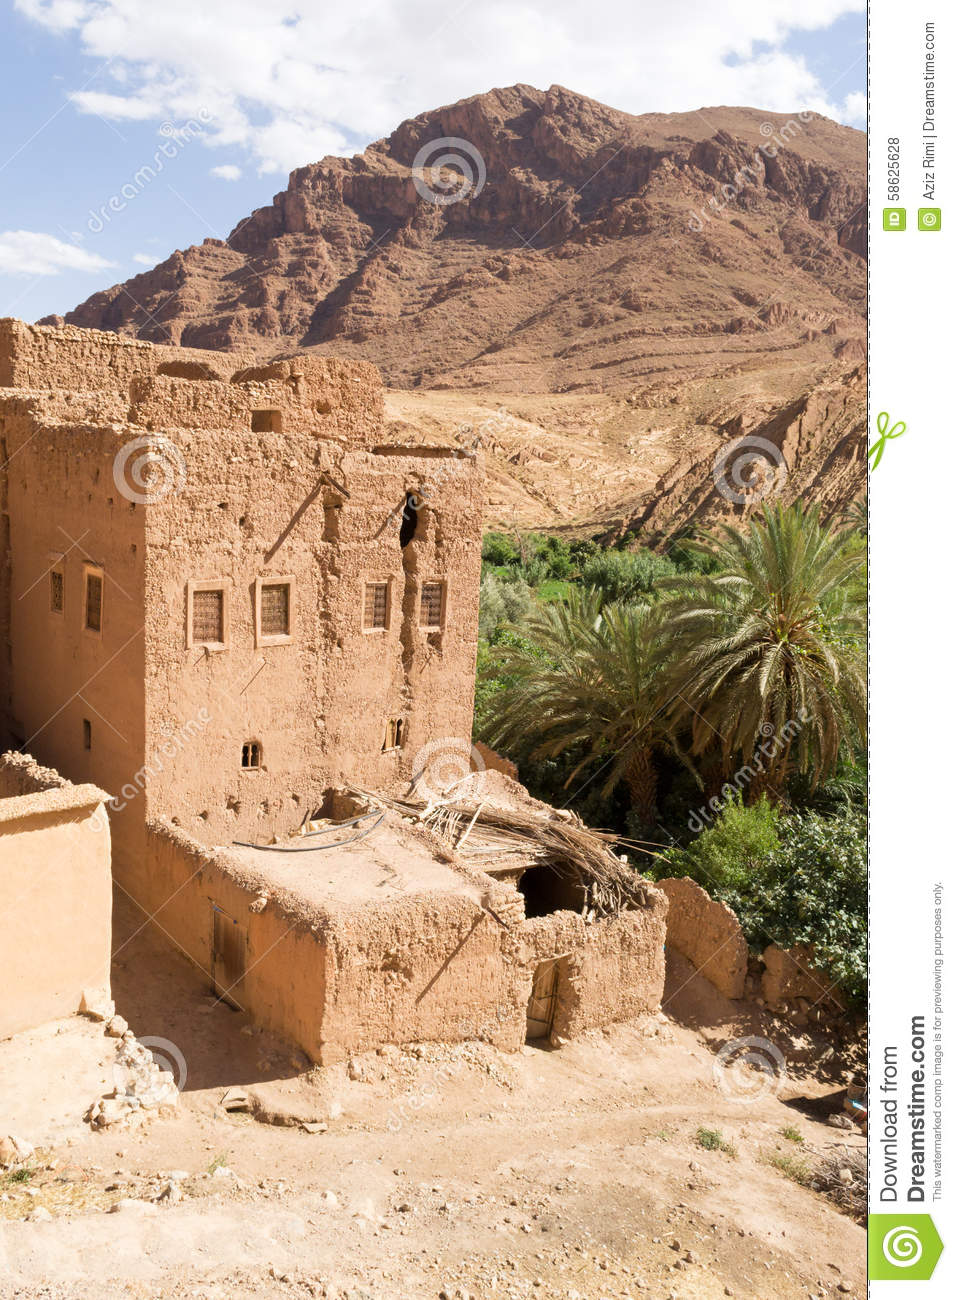 Vieille maison traditionnelle au maroc du sud photo stock for Plan maison sud est